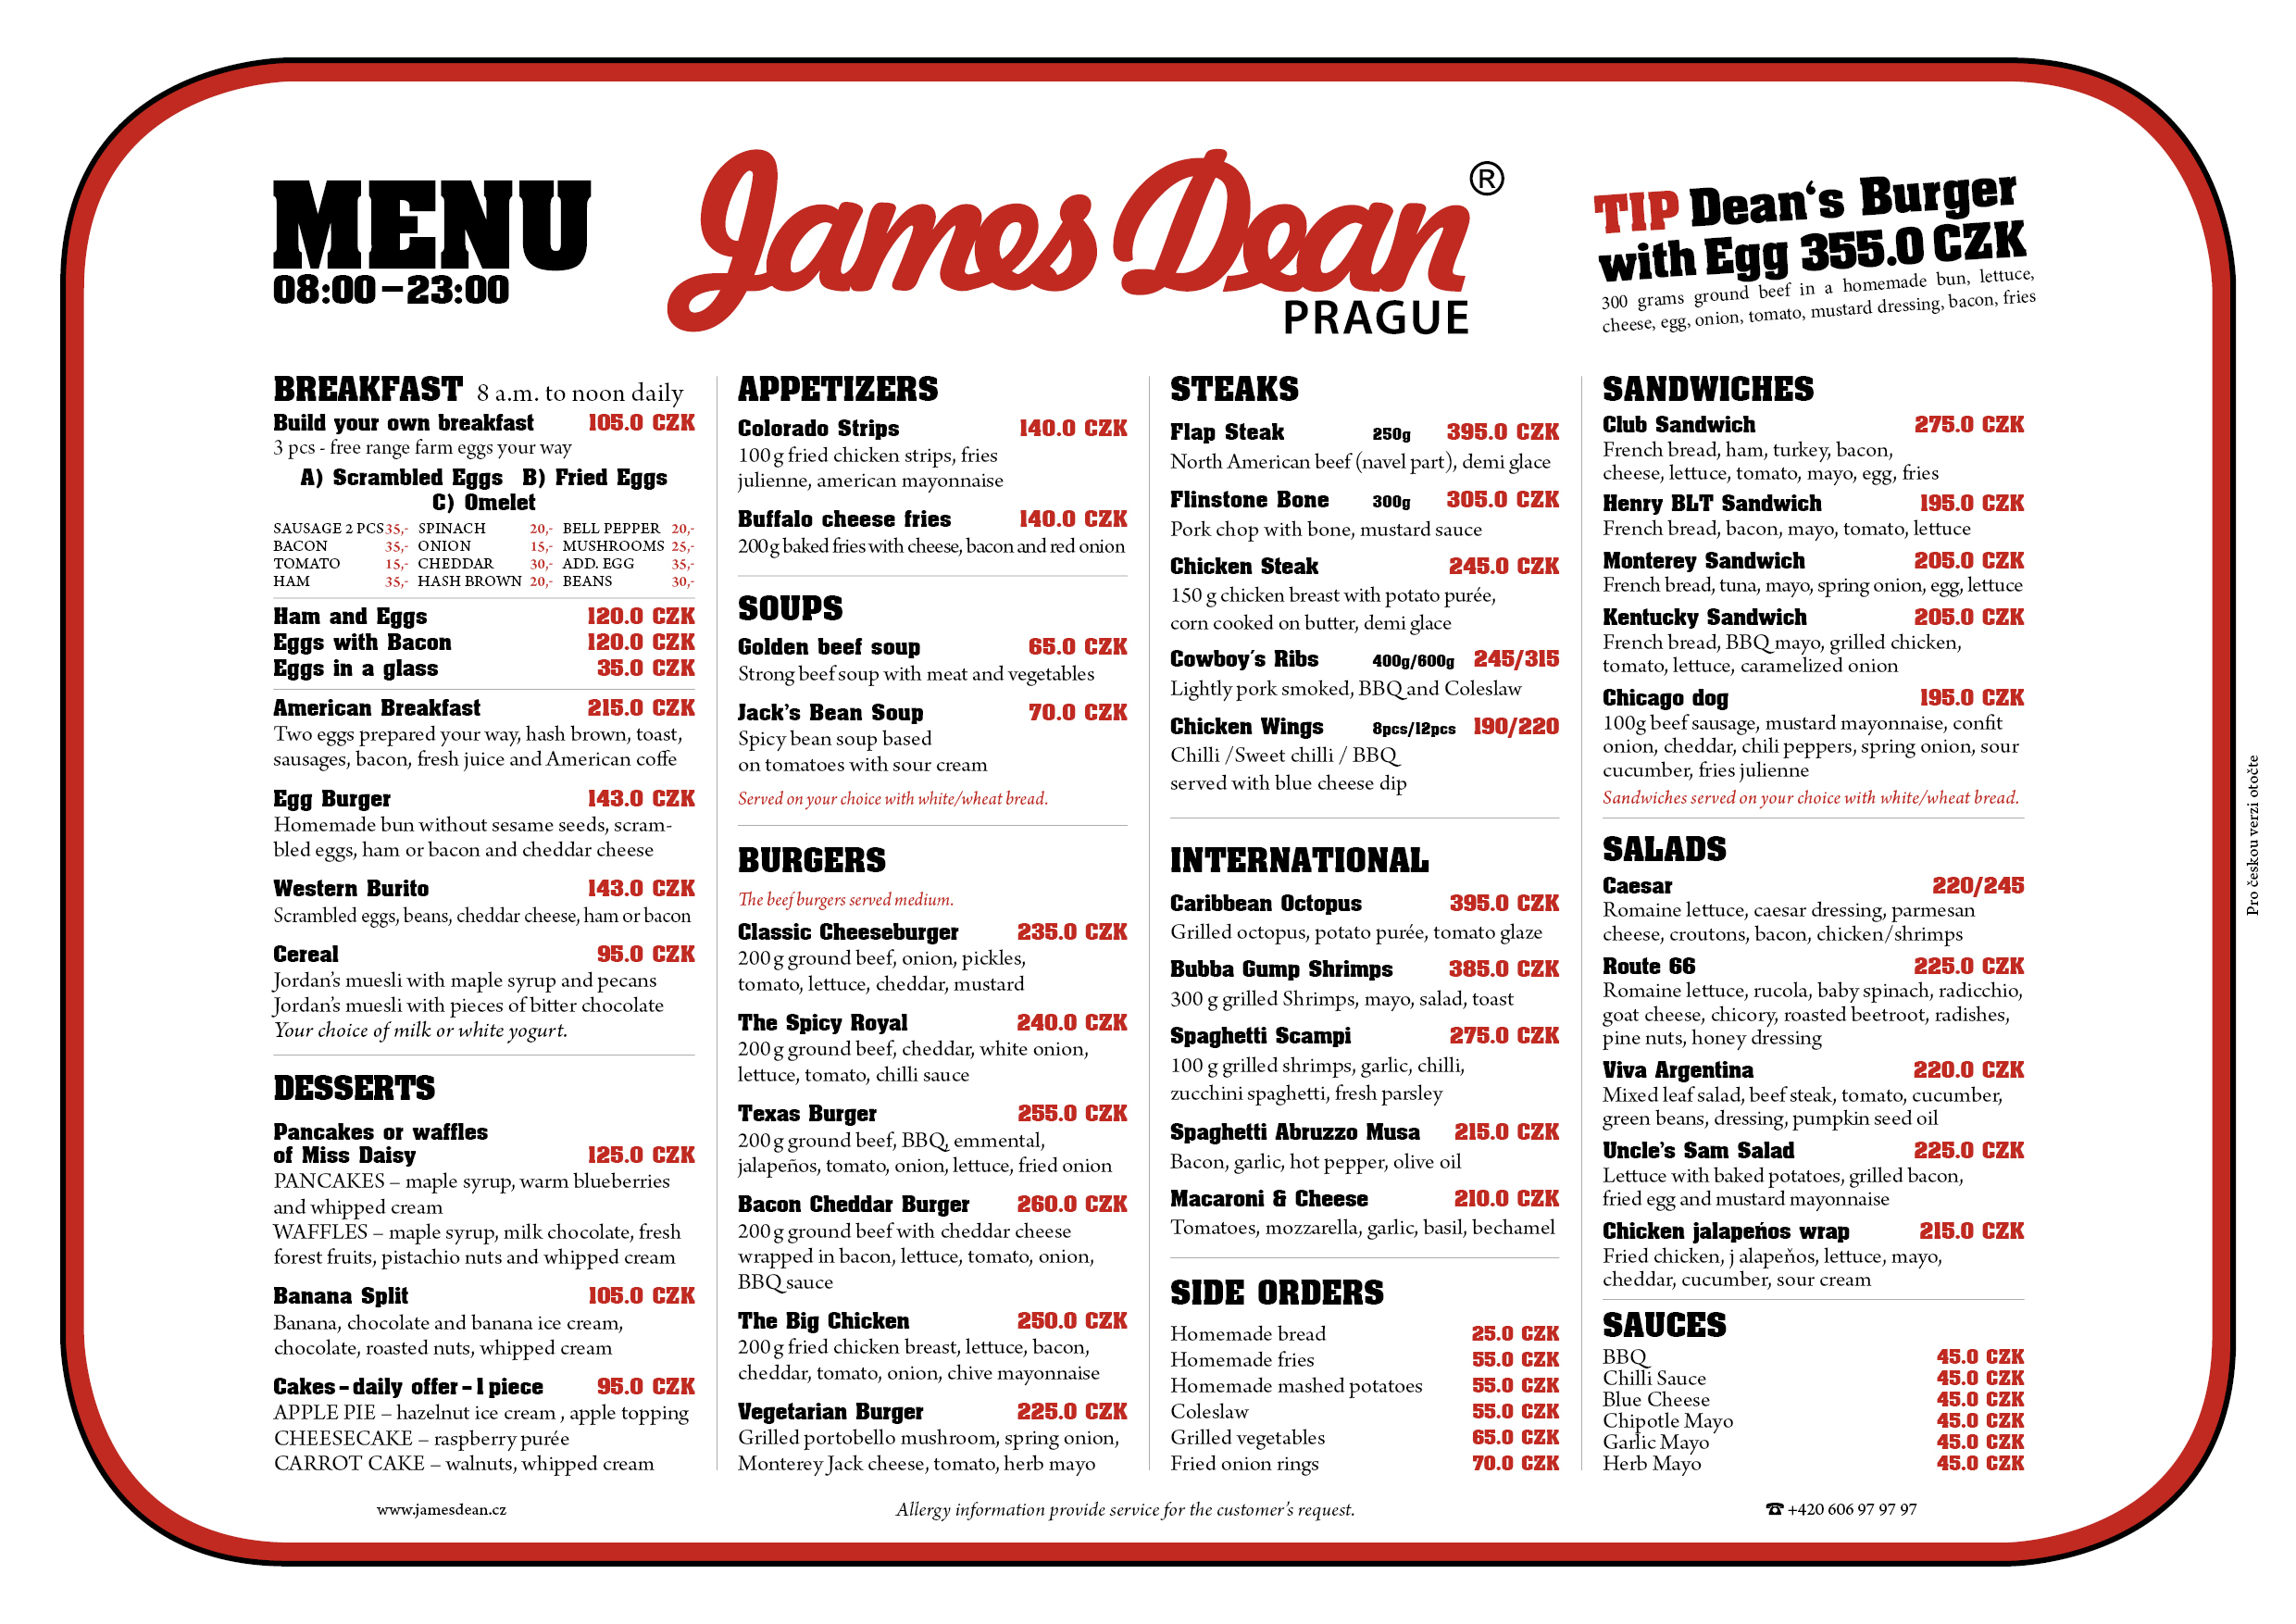 Food Menu James Dean Prague